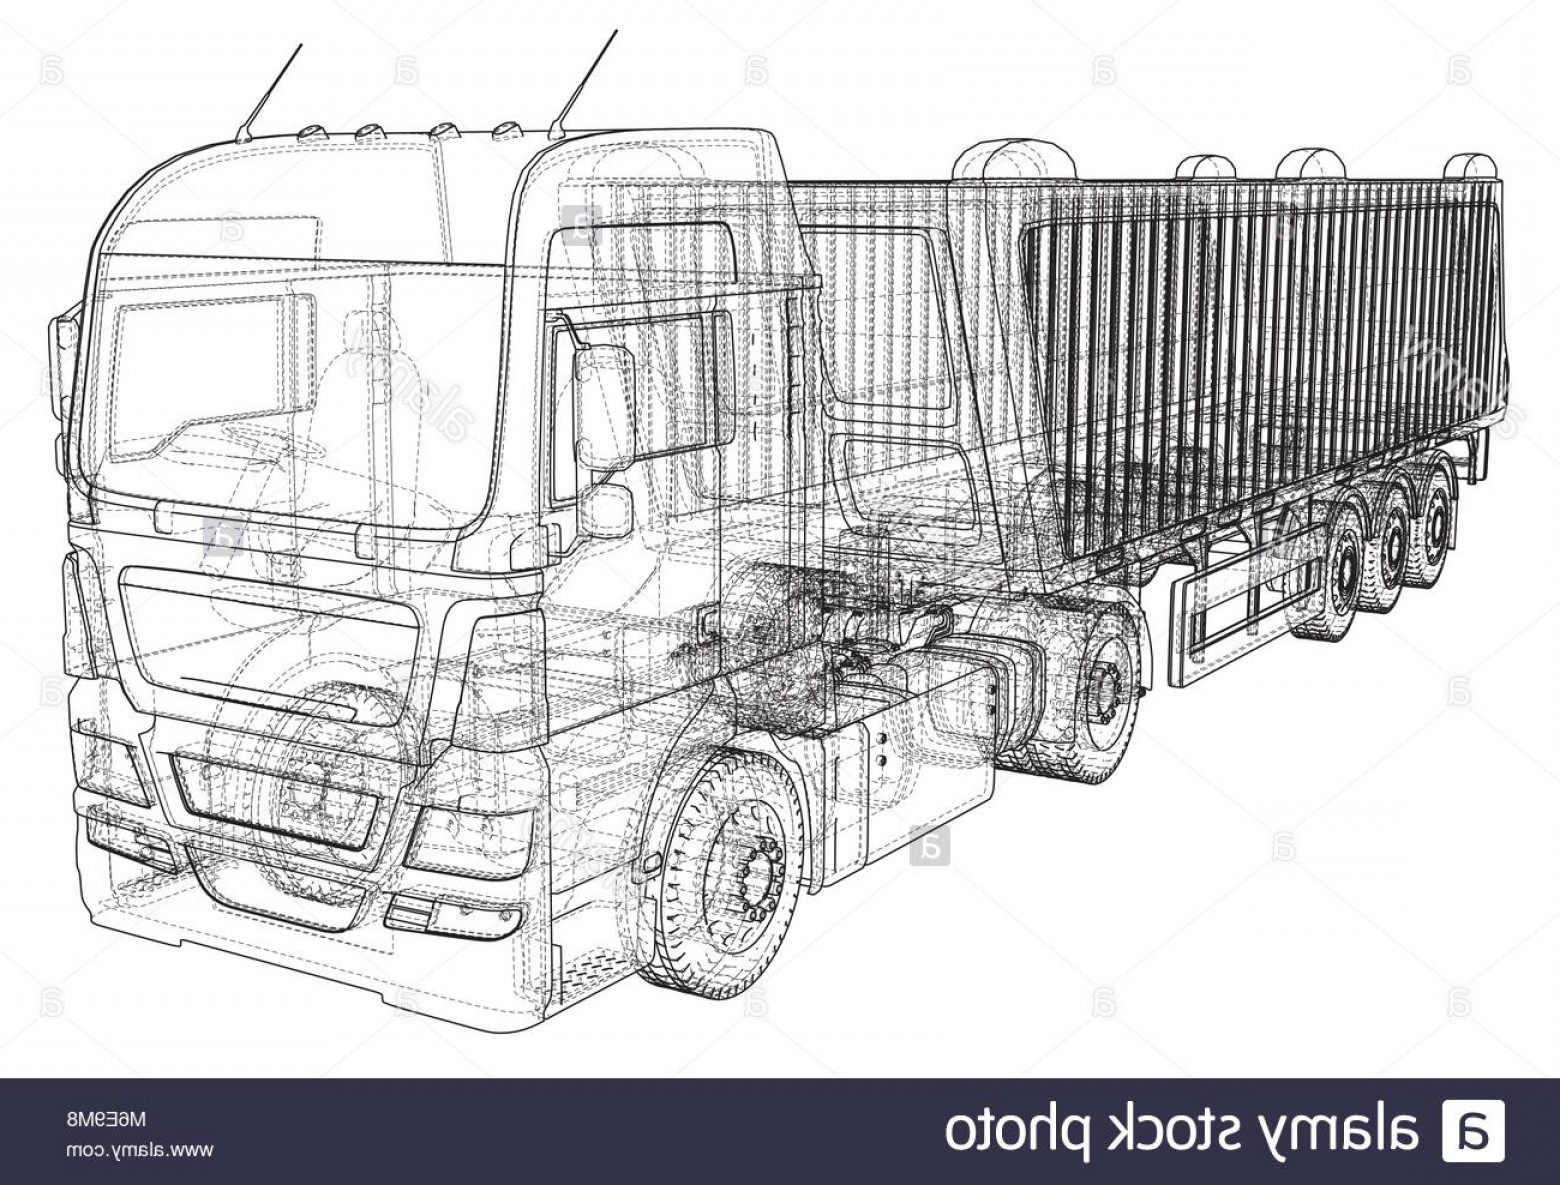 Dump Truck Vector Black And White: Stock Photo Dump Truck Vector Illustration Isolated White Tipper Lorry Tracing